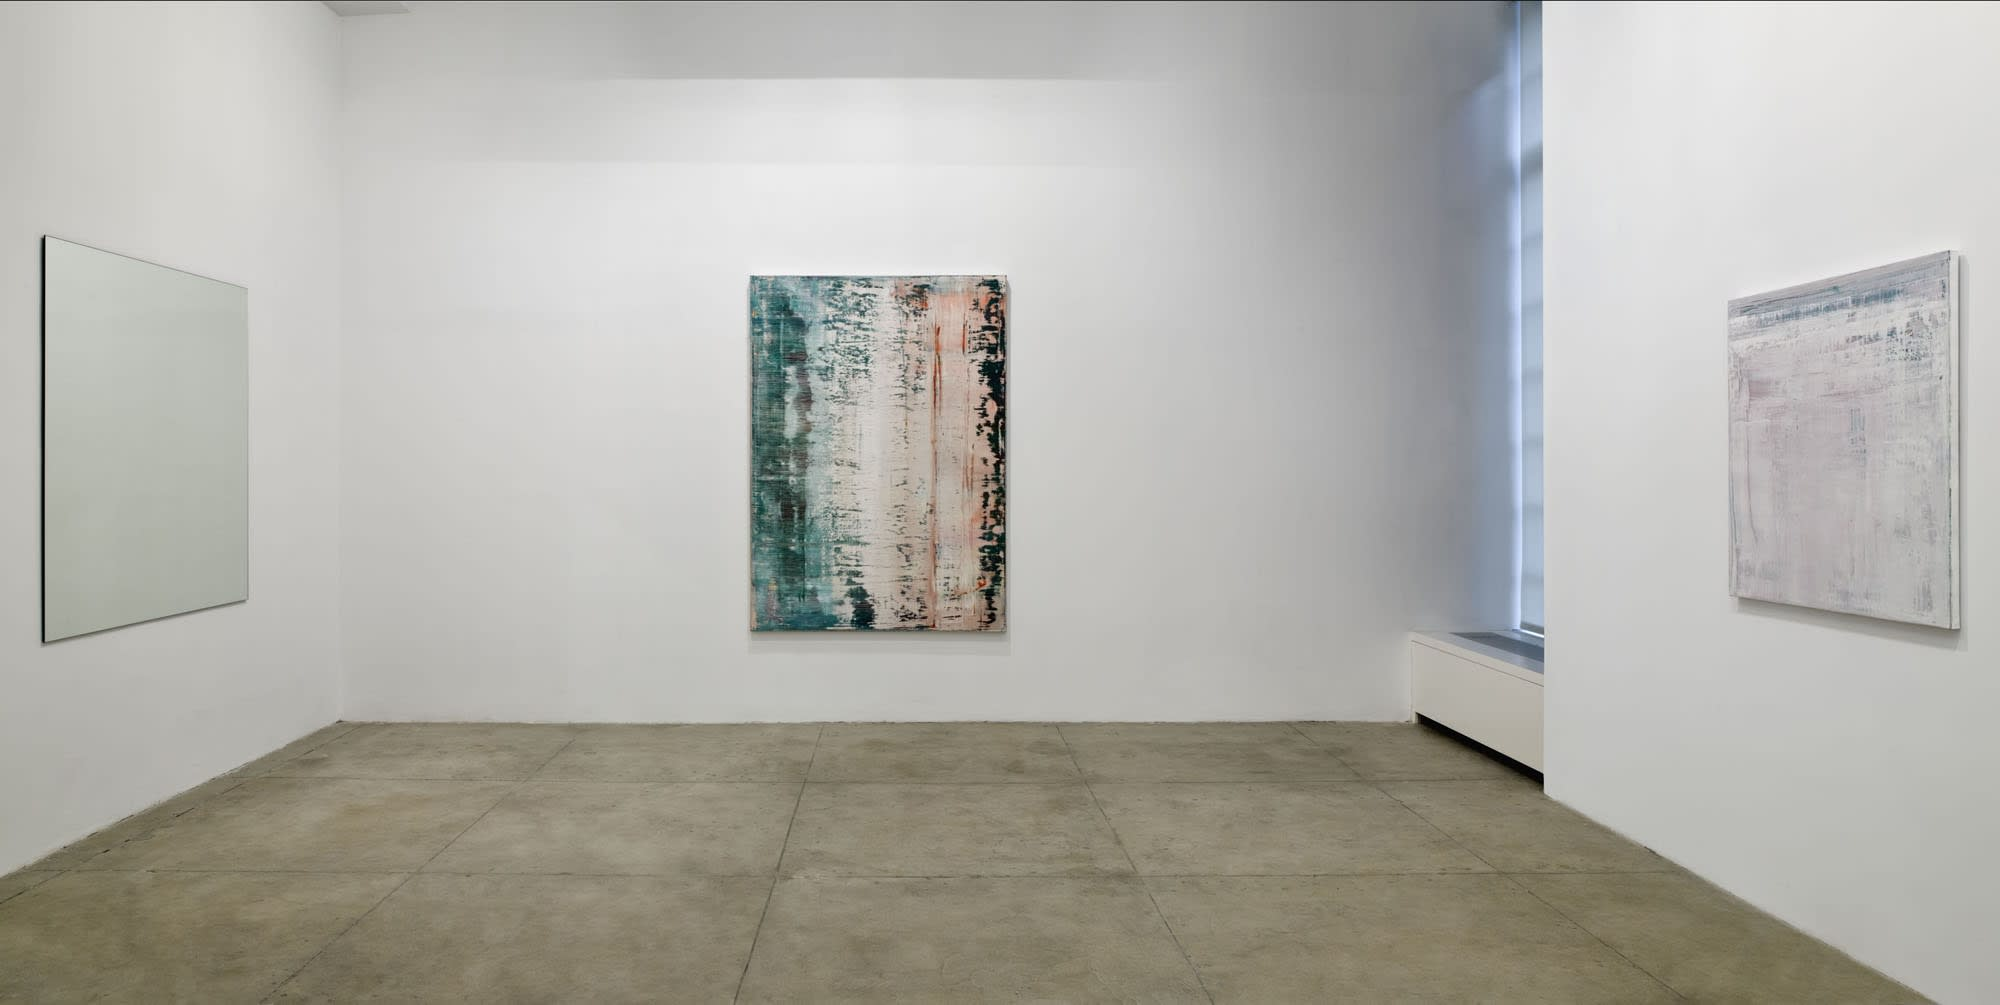 3 abstract paintings hang on 3 walls forming a corner. There is a window on the right.